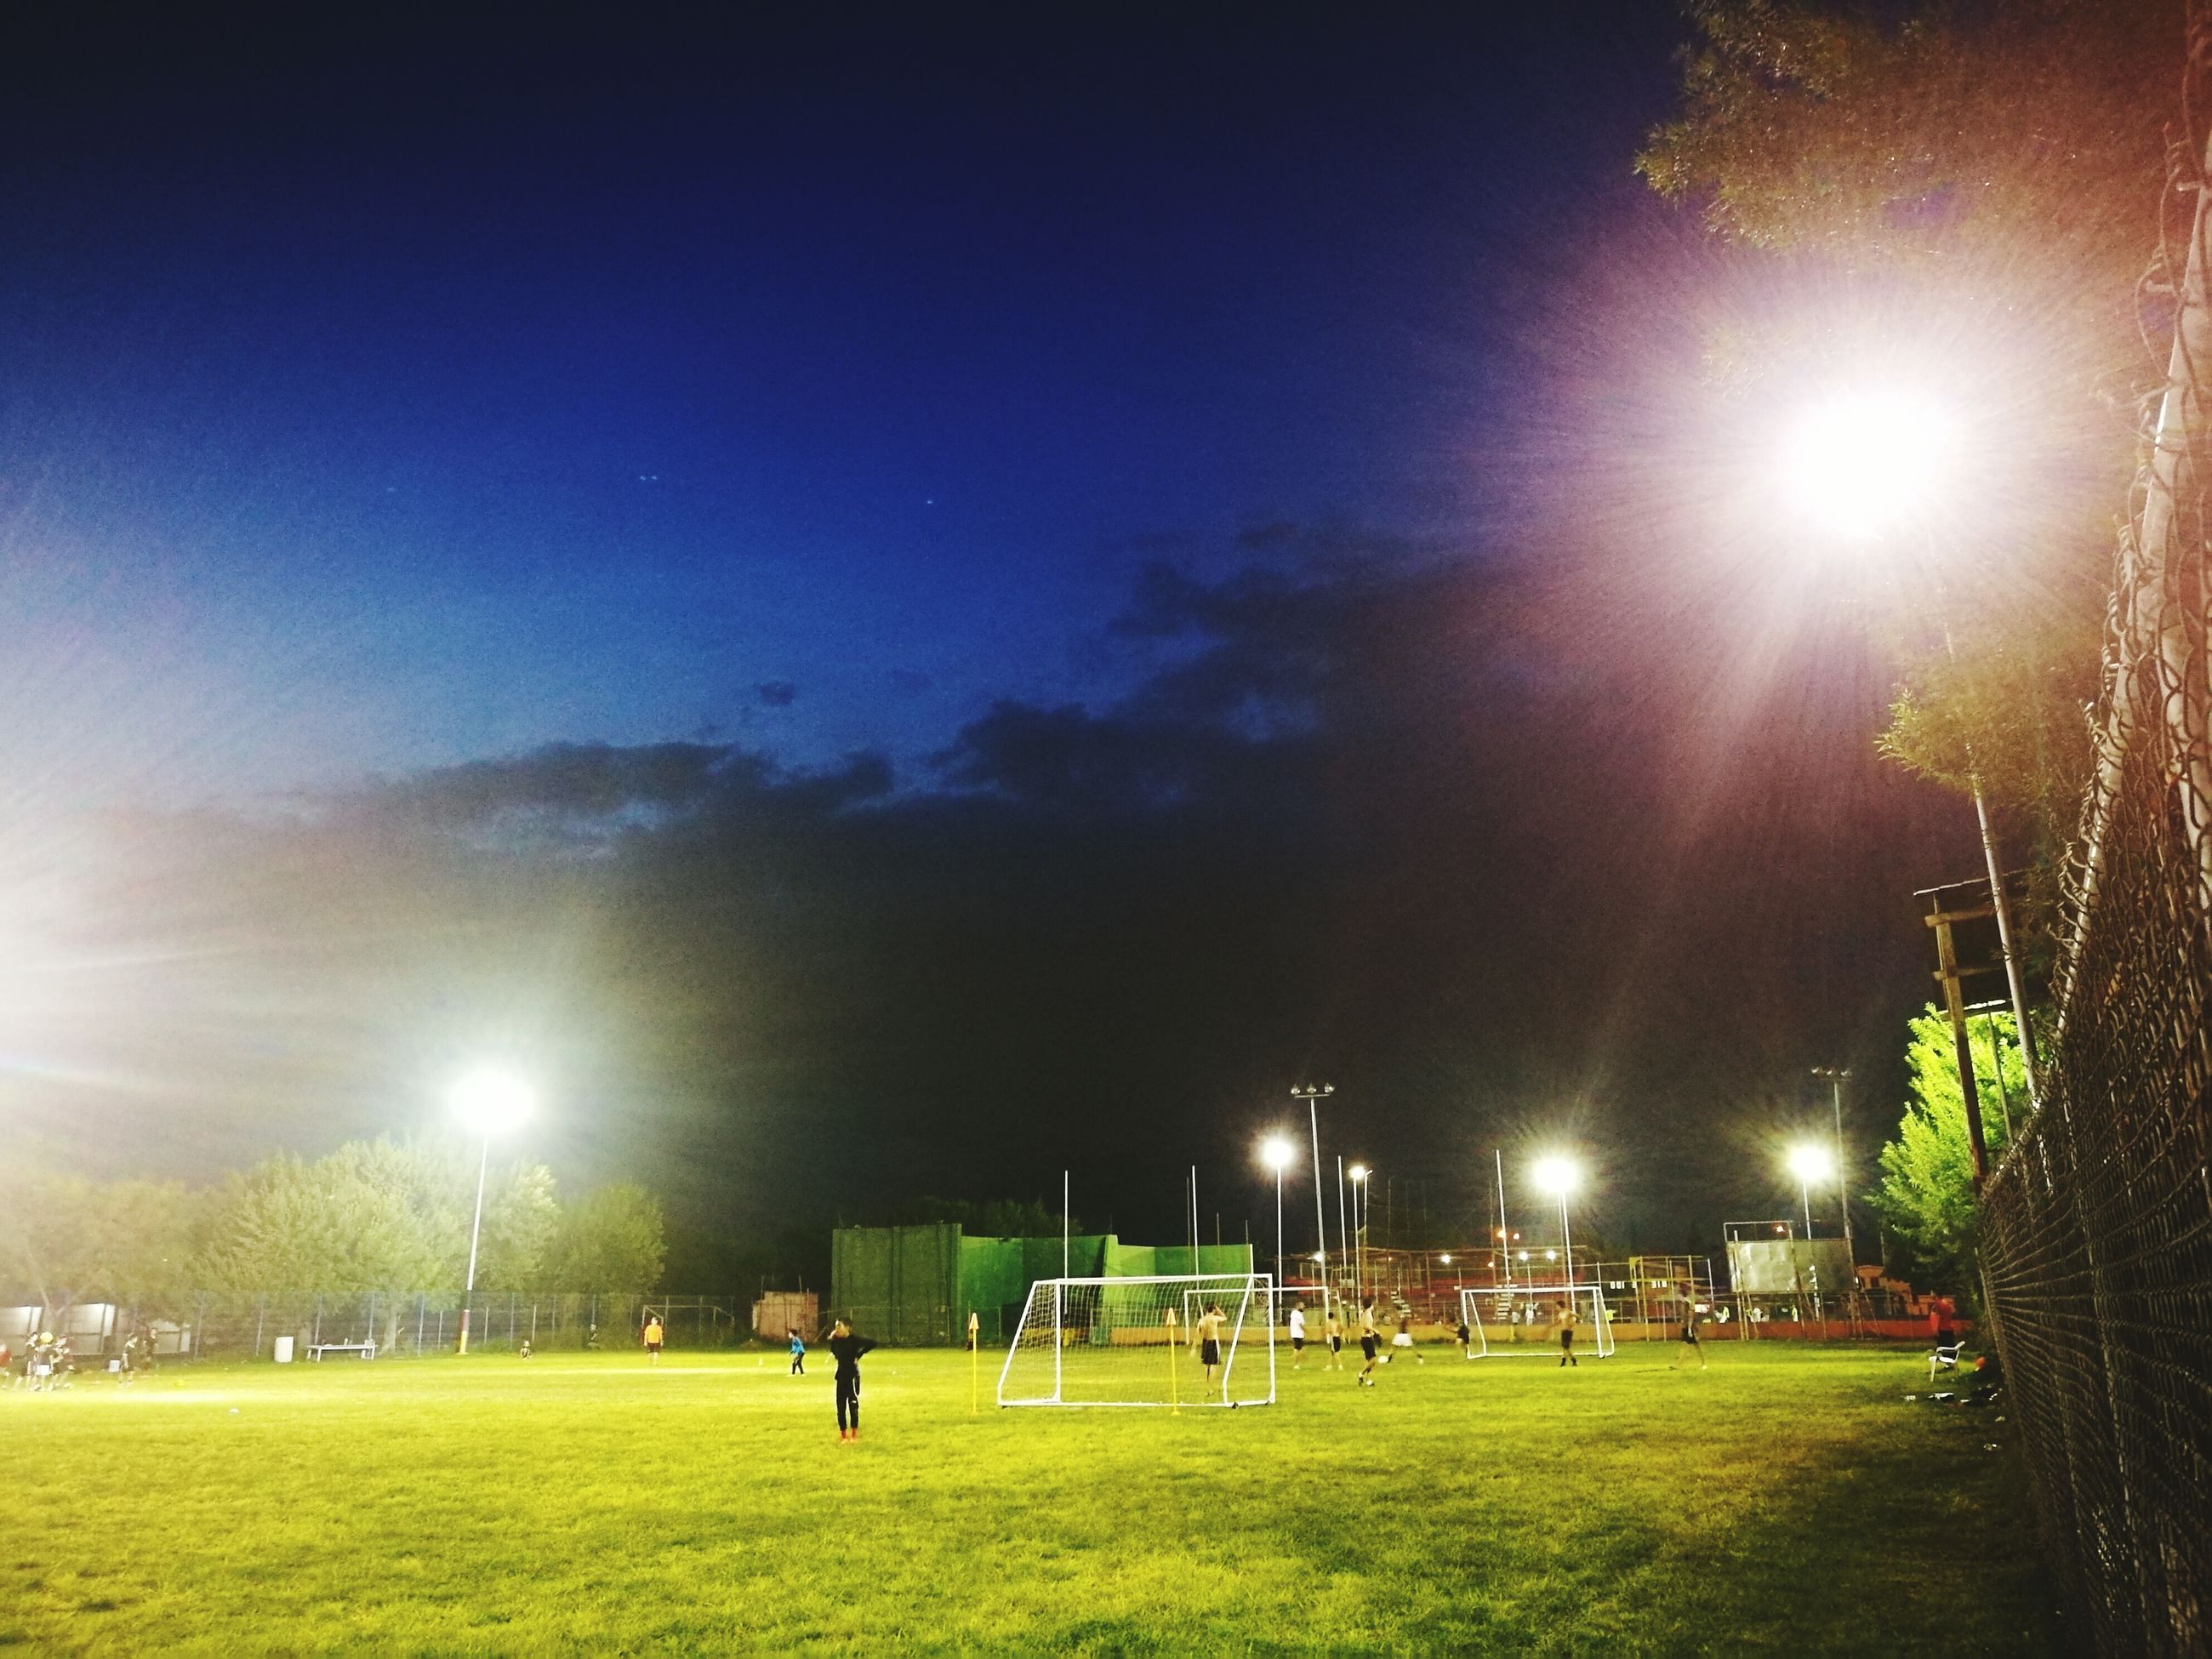 lens flare, illuminated, night, real people, grass, outdoors, floodlight, field, tree, sky, men, soccer field, soccer, sport, nature, playing field, goal post, people